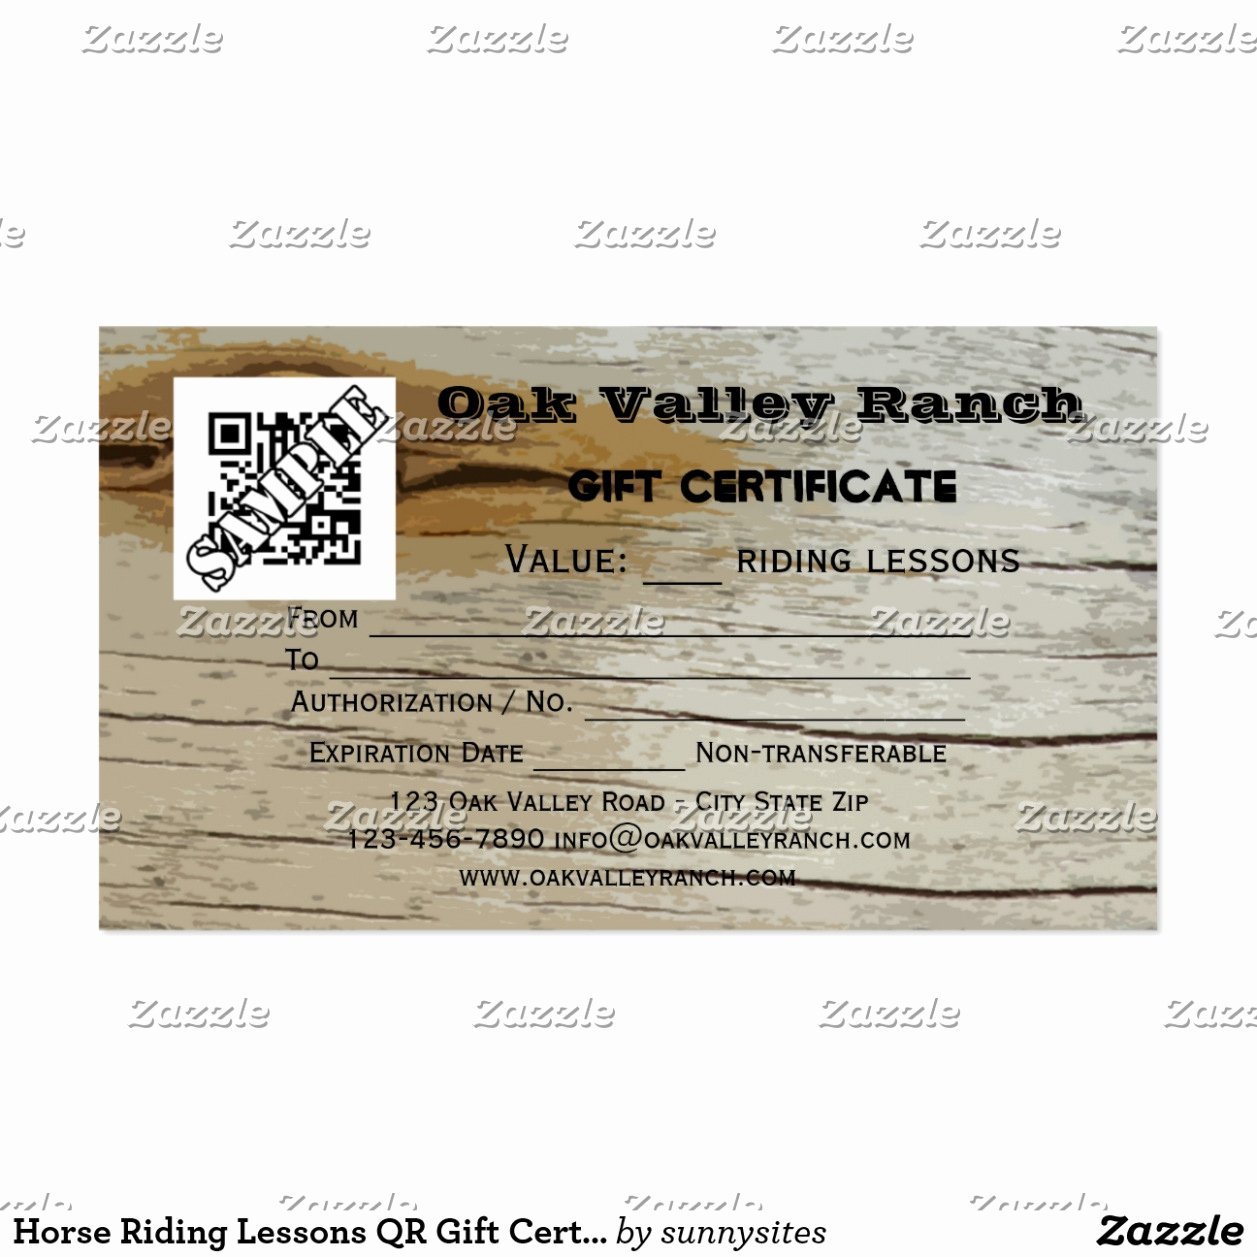 Silent Auction Gift Certificate Template Lovely Gift Certificate Template for Riding Lessons